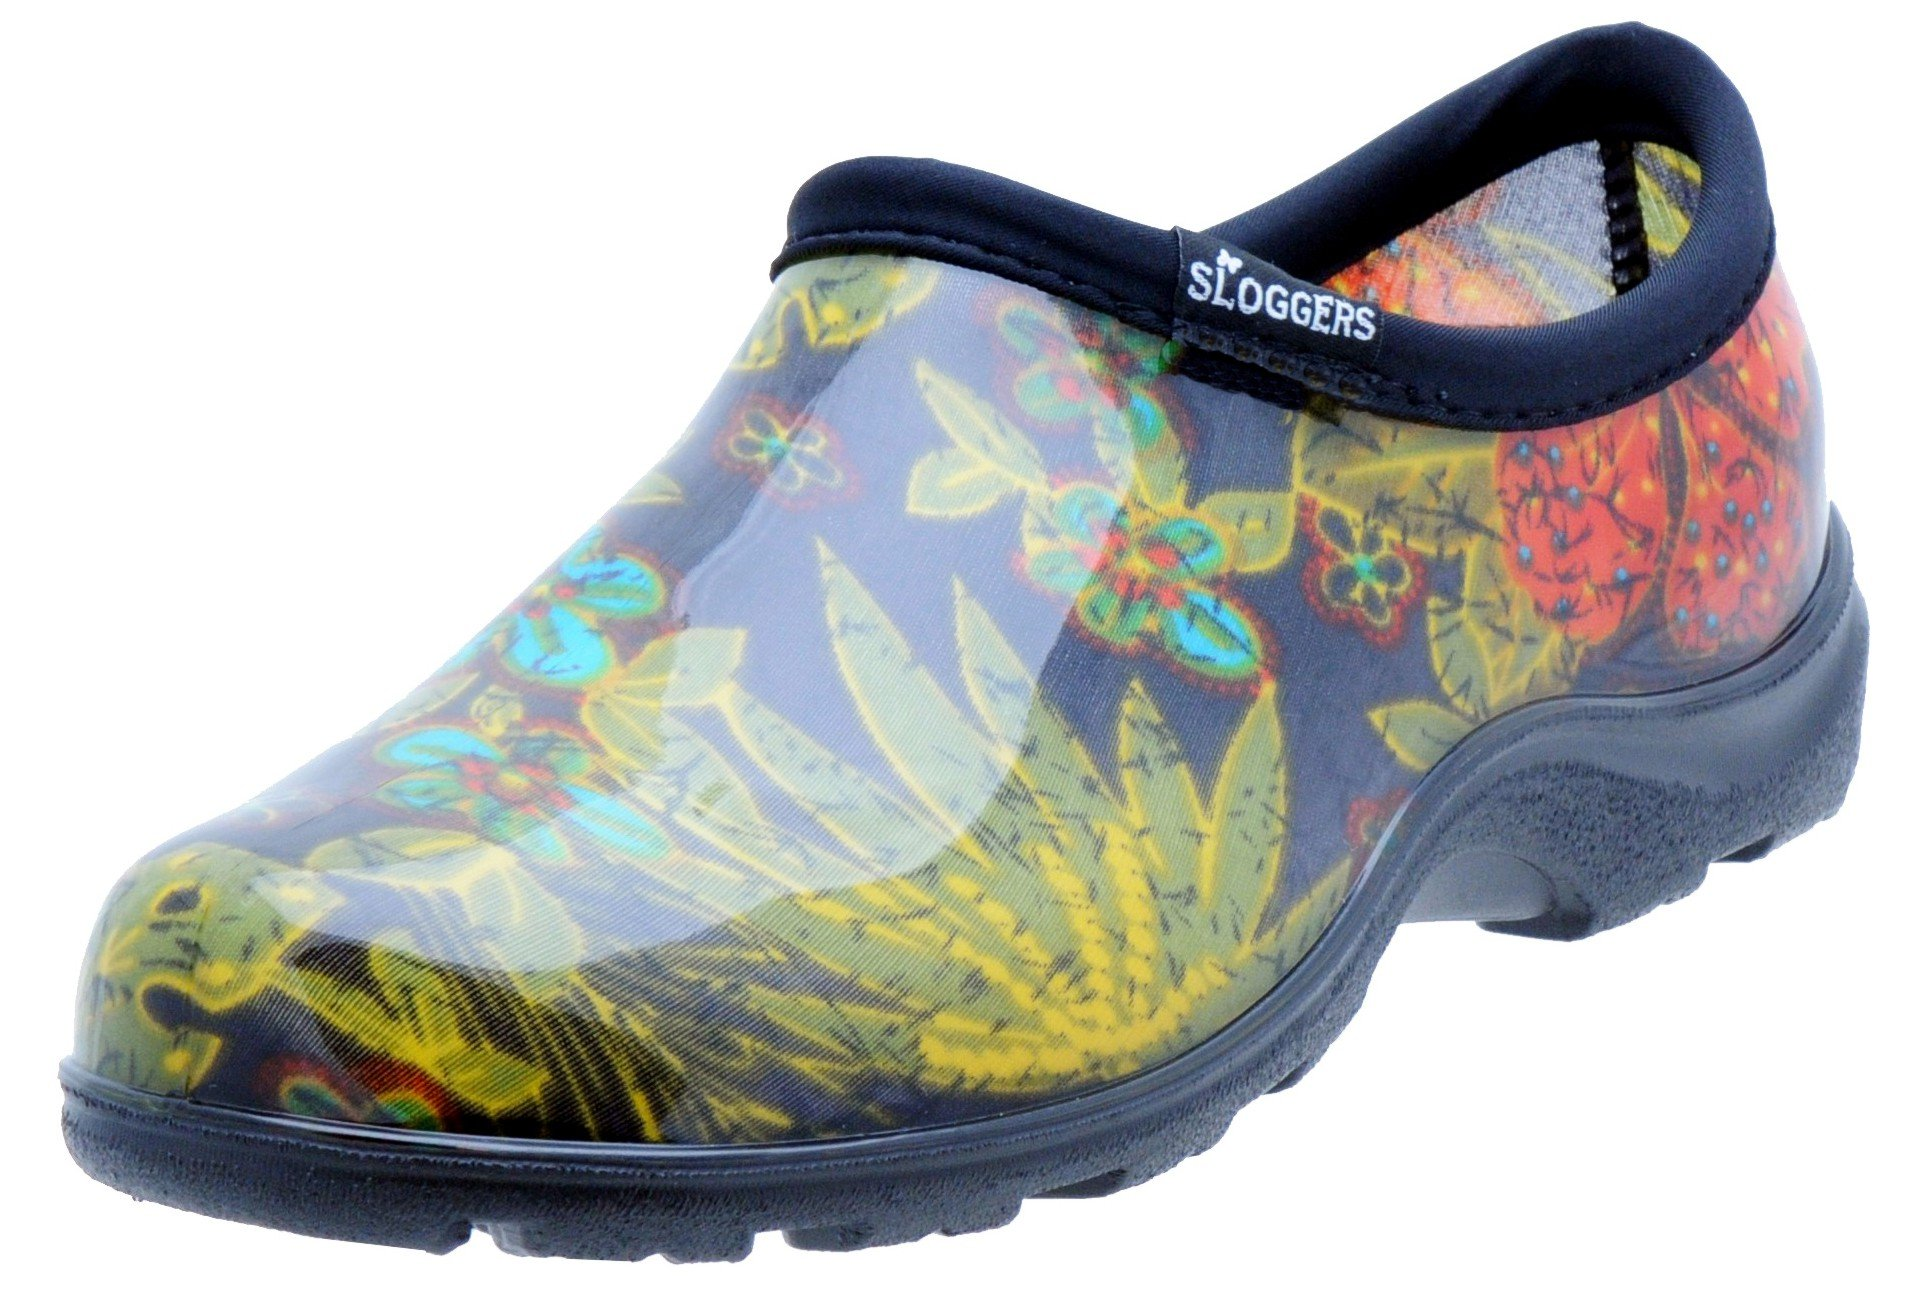 Sloggers  Women's Waterproof  Rain and Garden Shoe with Comfort Insole, Midsummer Black, Size 7,  Style 5102BK07